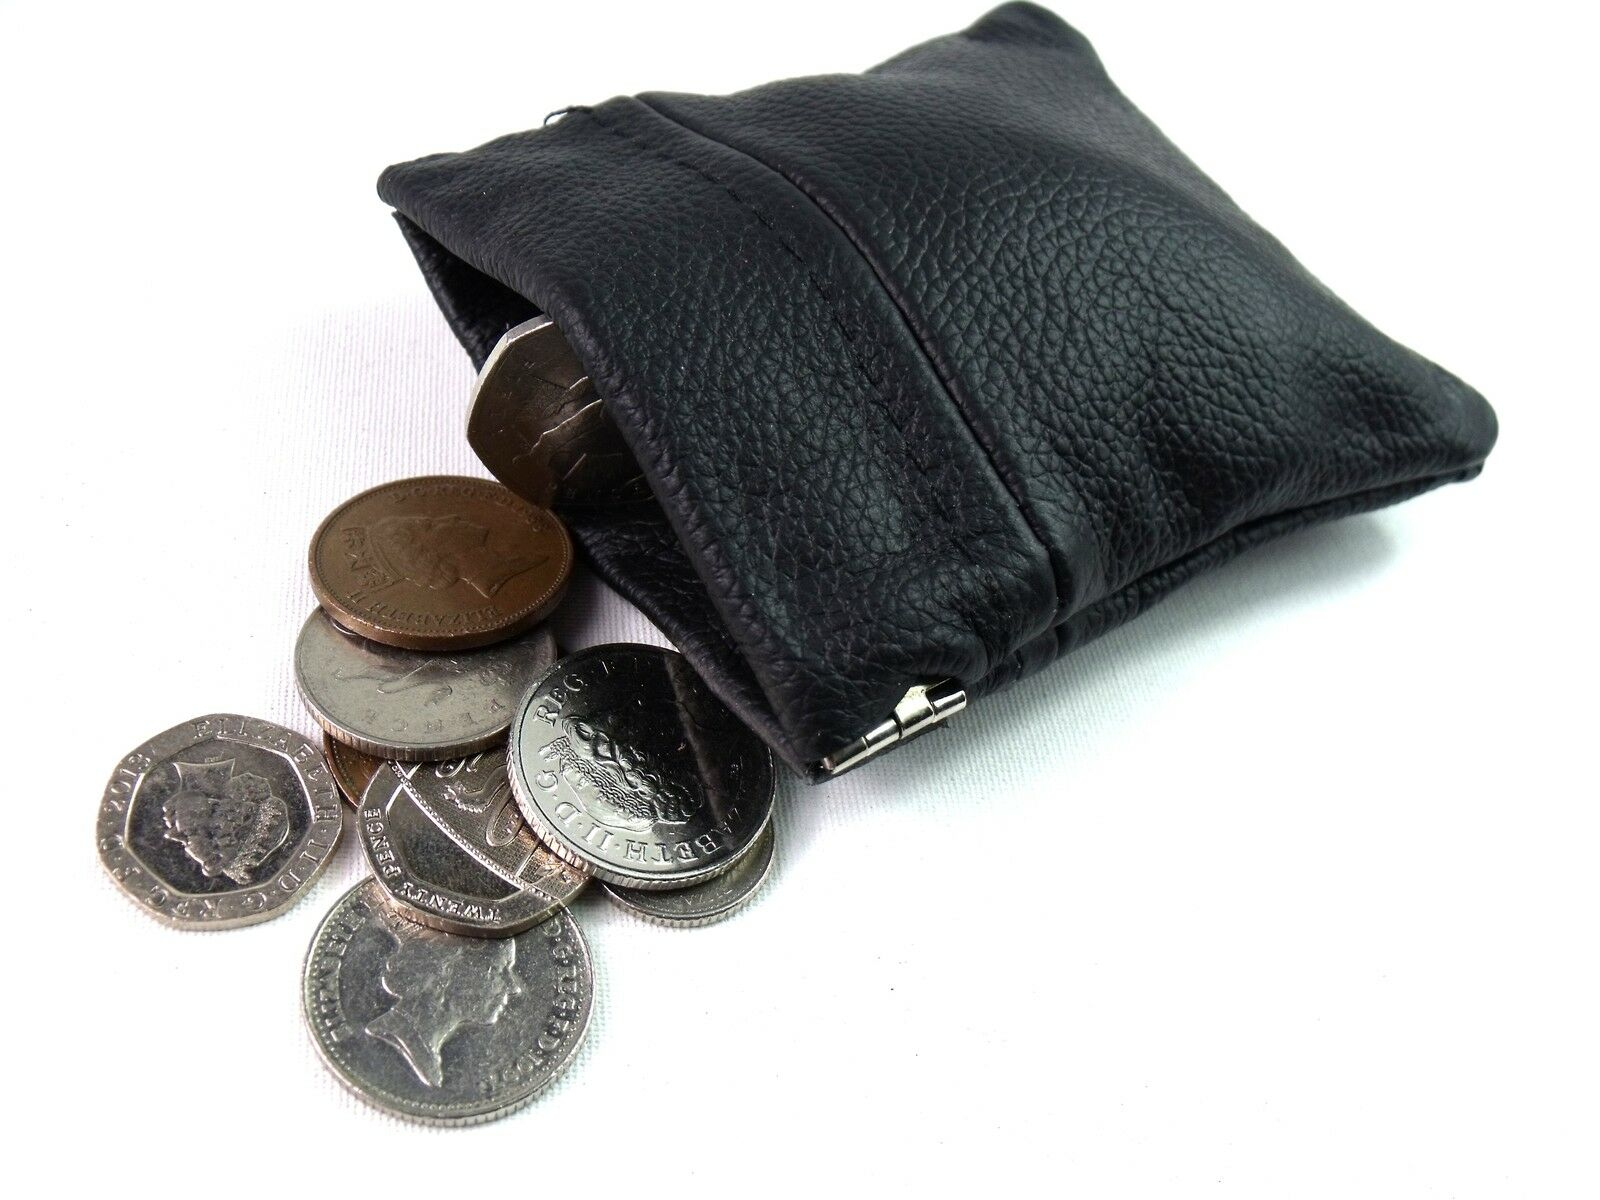 Unisex New Genuine Black Leather Coin Pouch Purse Wallet Snap Top Card Holder